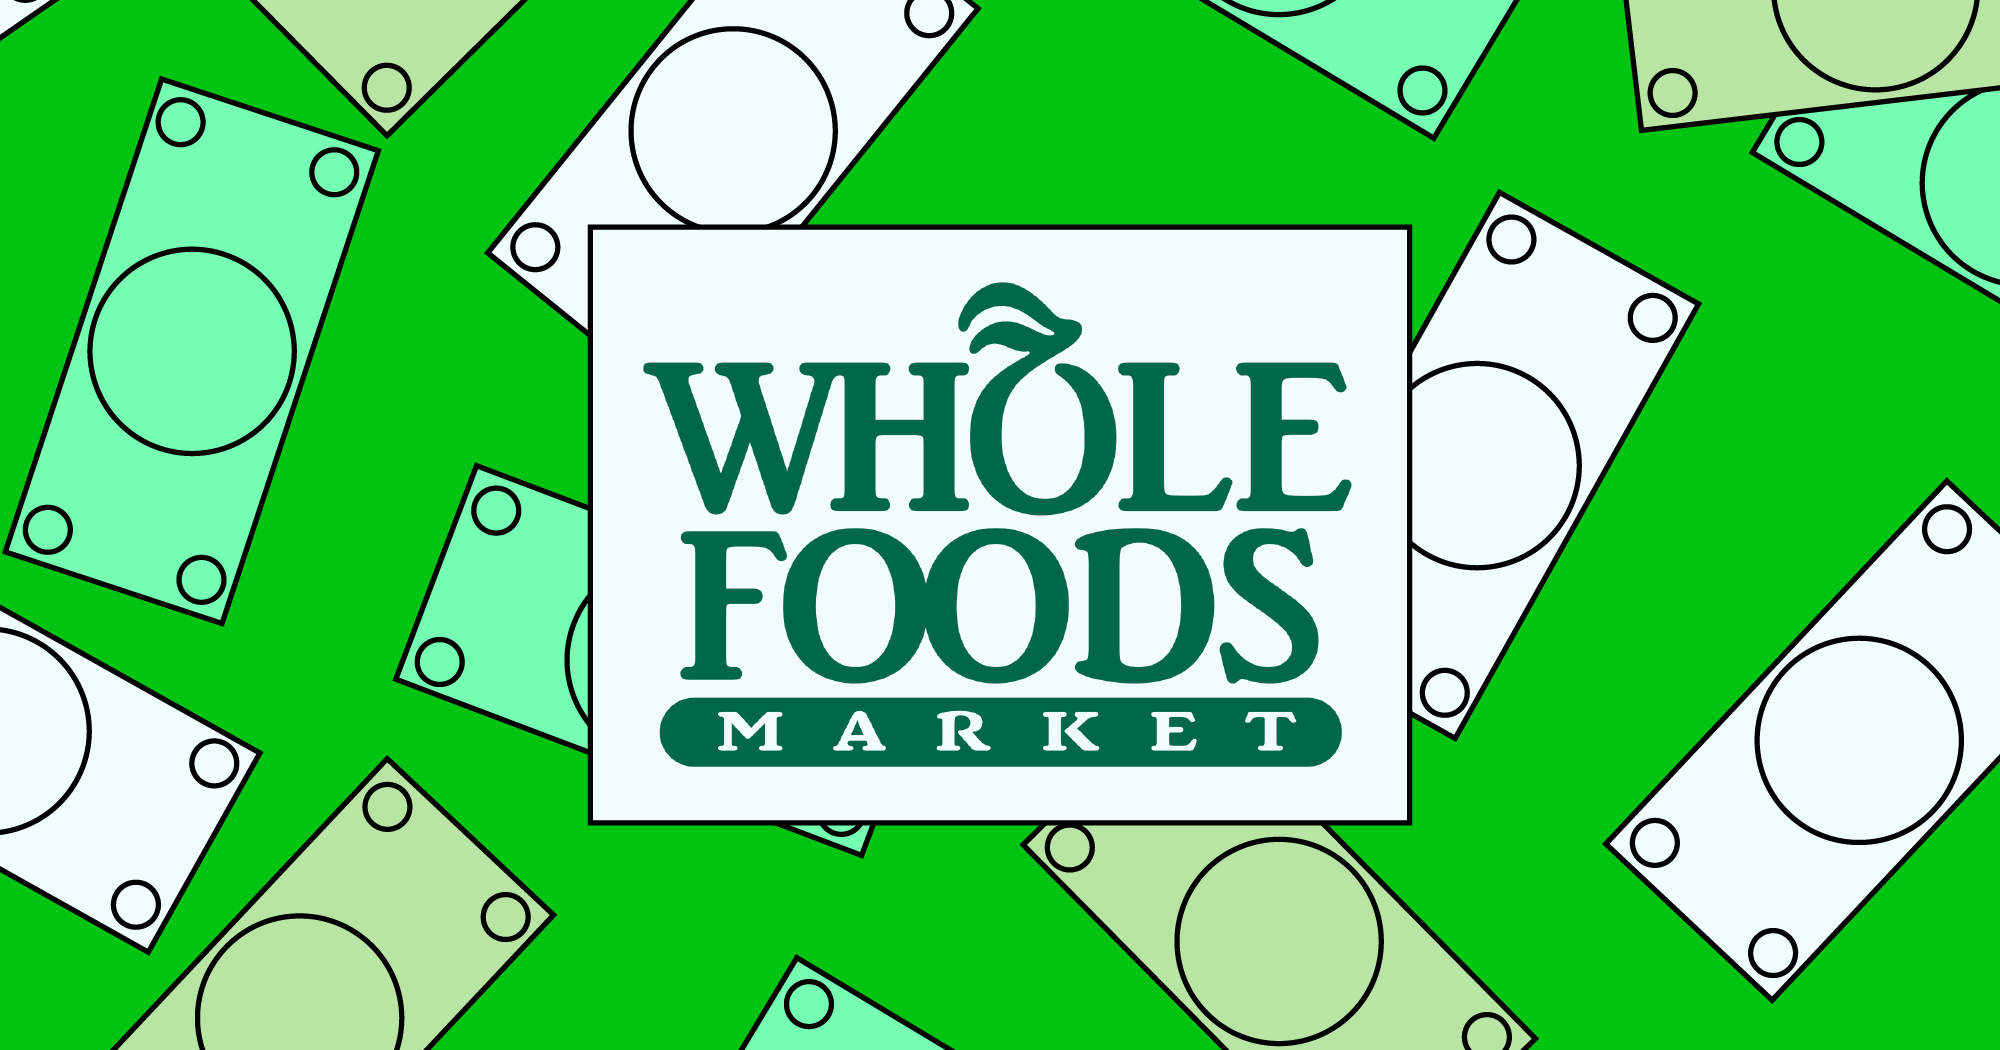 7 Easy Ways To Save Money At Whole Foods (Yes, Really)